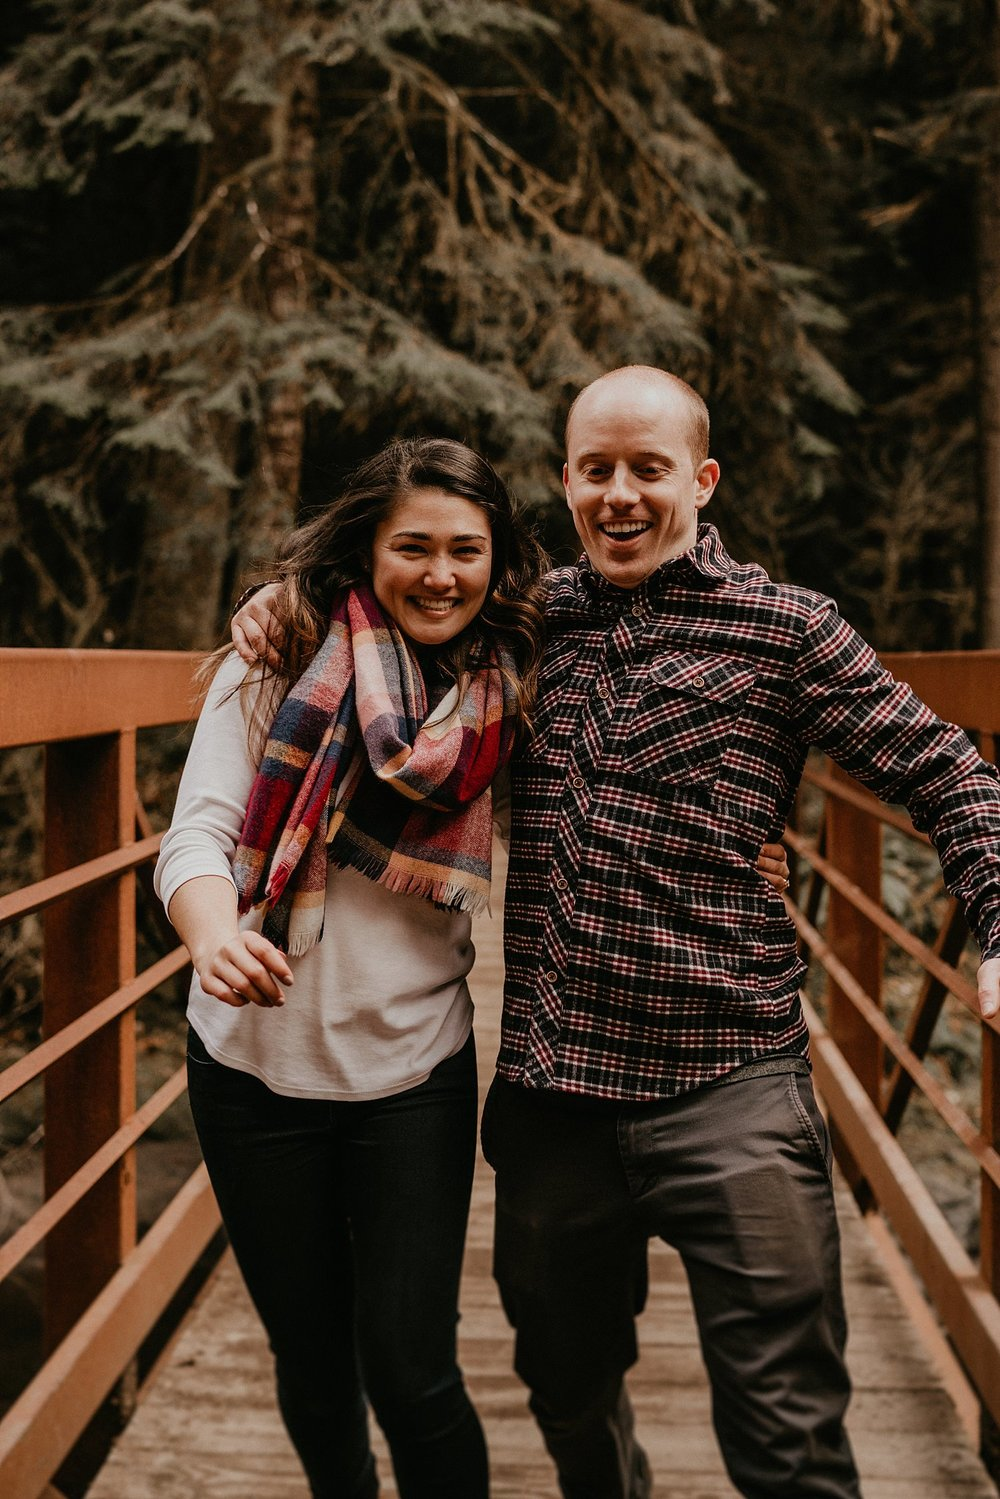 Lake-Crescent-Mount-Storm-King-Hiking-Adventure-Engagement-Seattle-Wedding-Photographer_0034.jpg